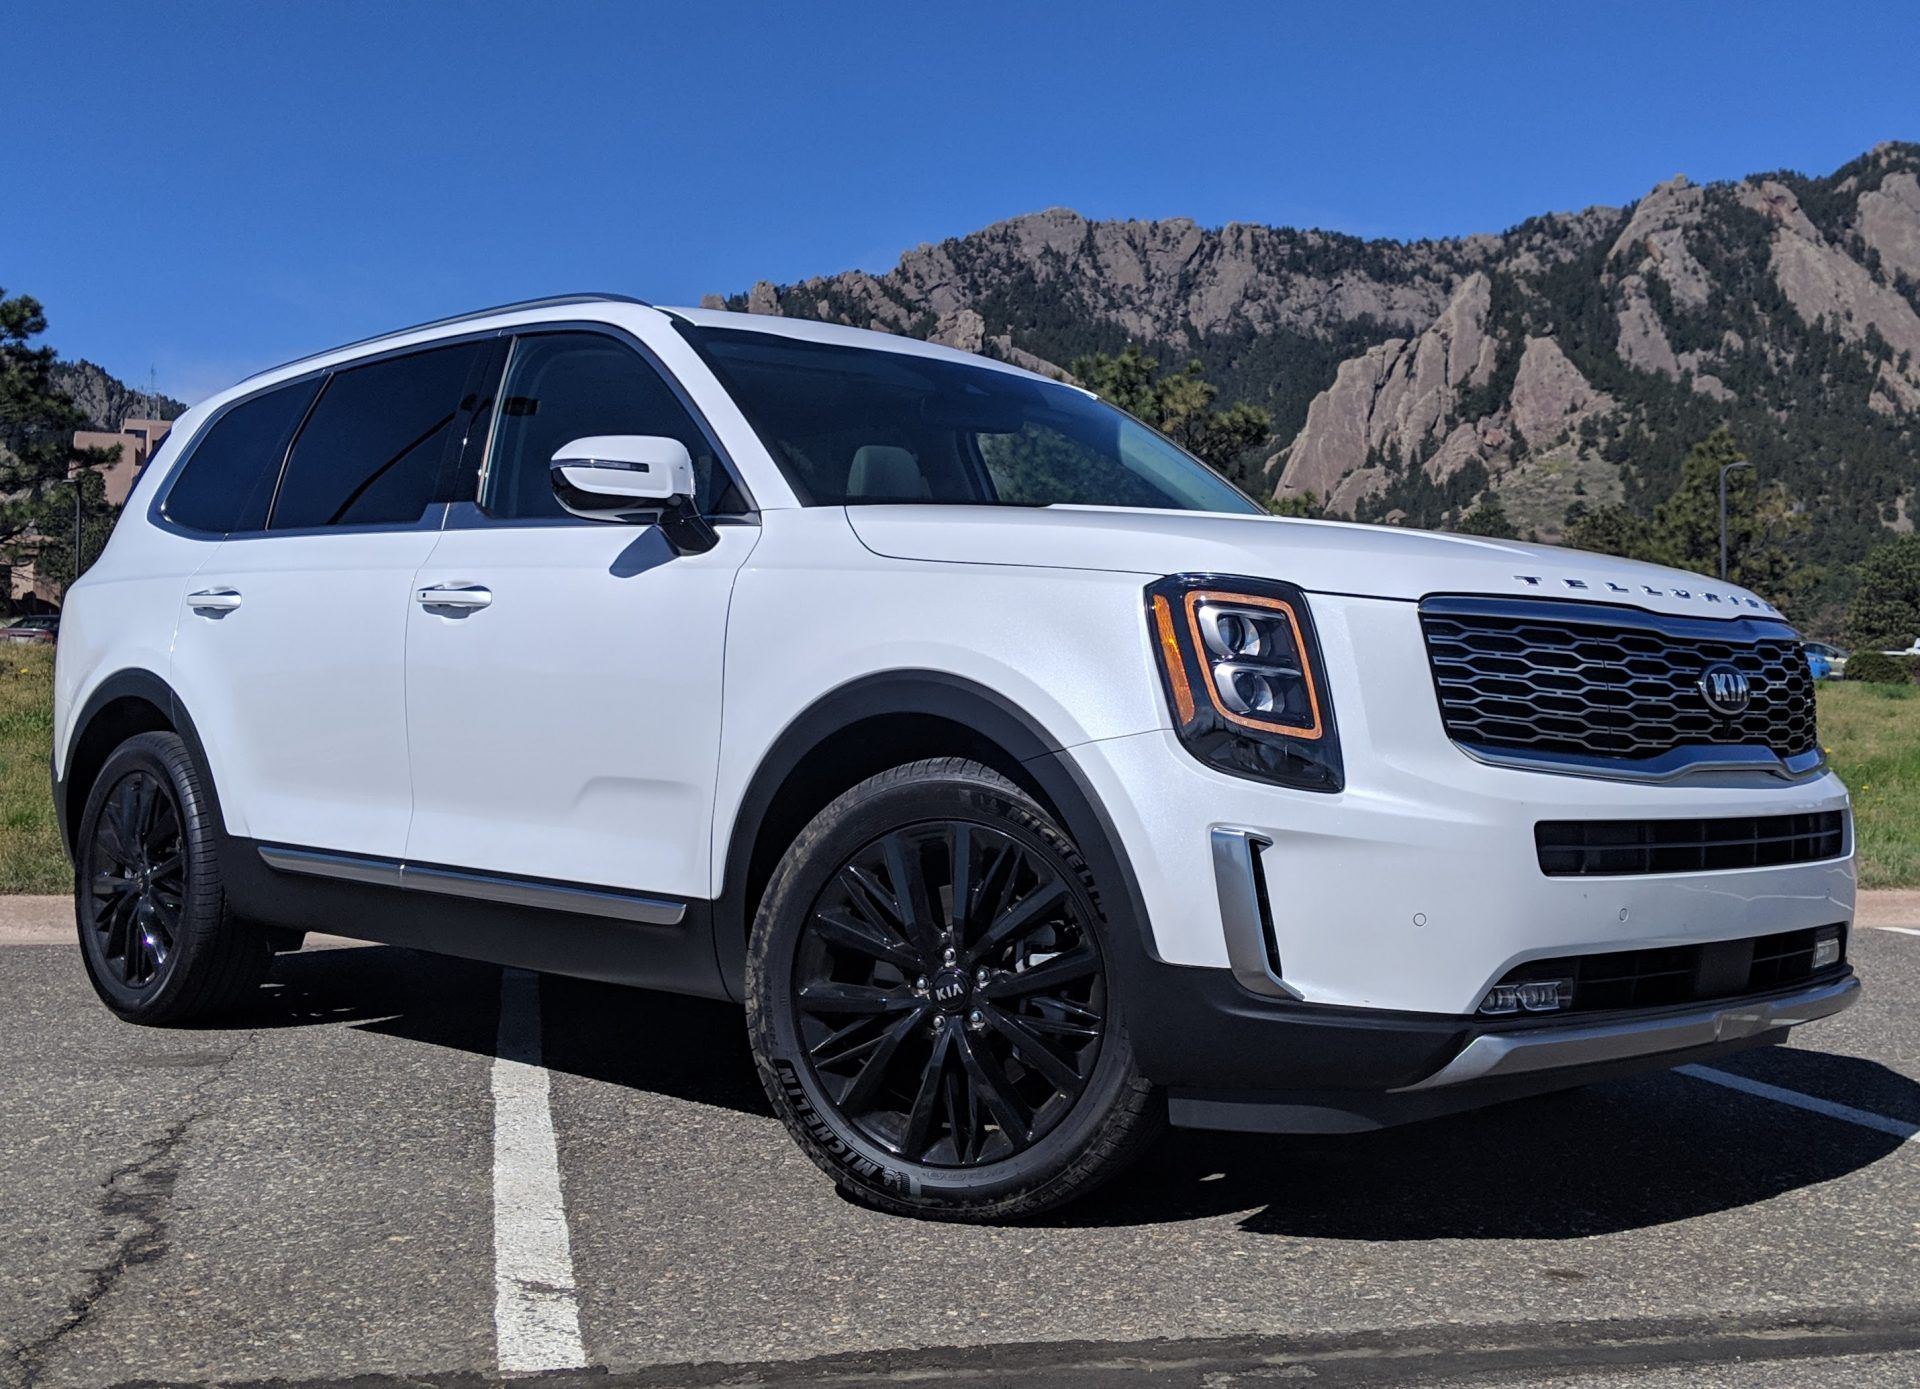 2020 Kia Telluride Review Maybe The Best Family Suv You Can Buy But It S Not Perfect The Fast Lane Car In 2020 Best Suv Family Suv Best Suv For Family